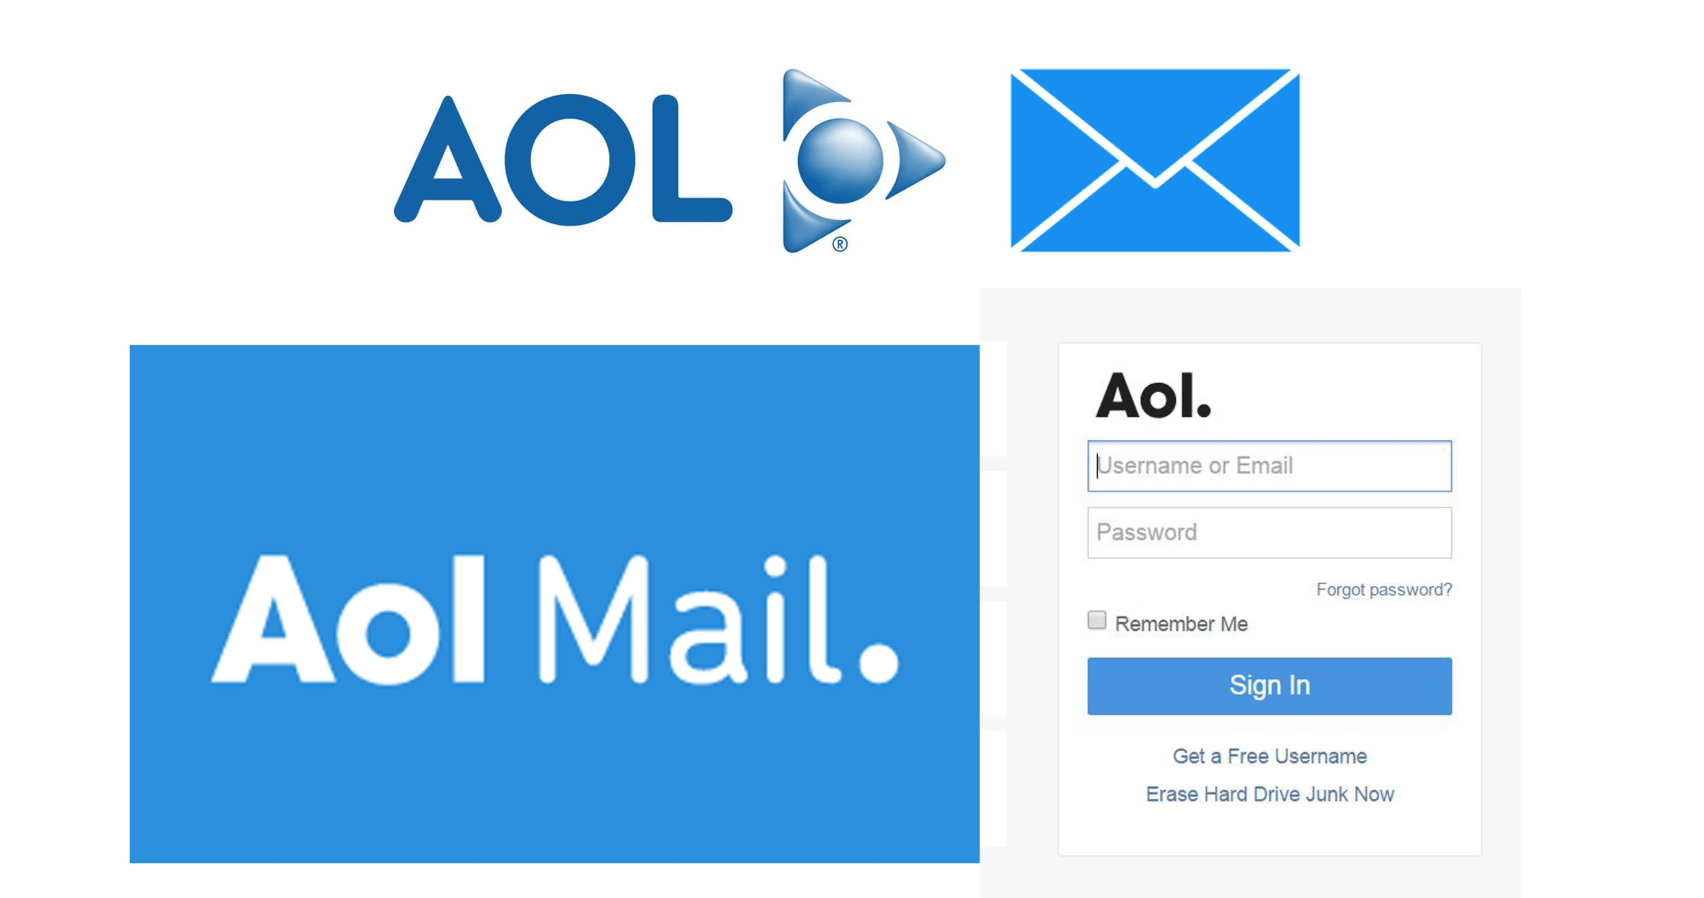 Aol Mail Login Sign in,New Account at www aolmail com